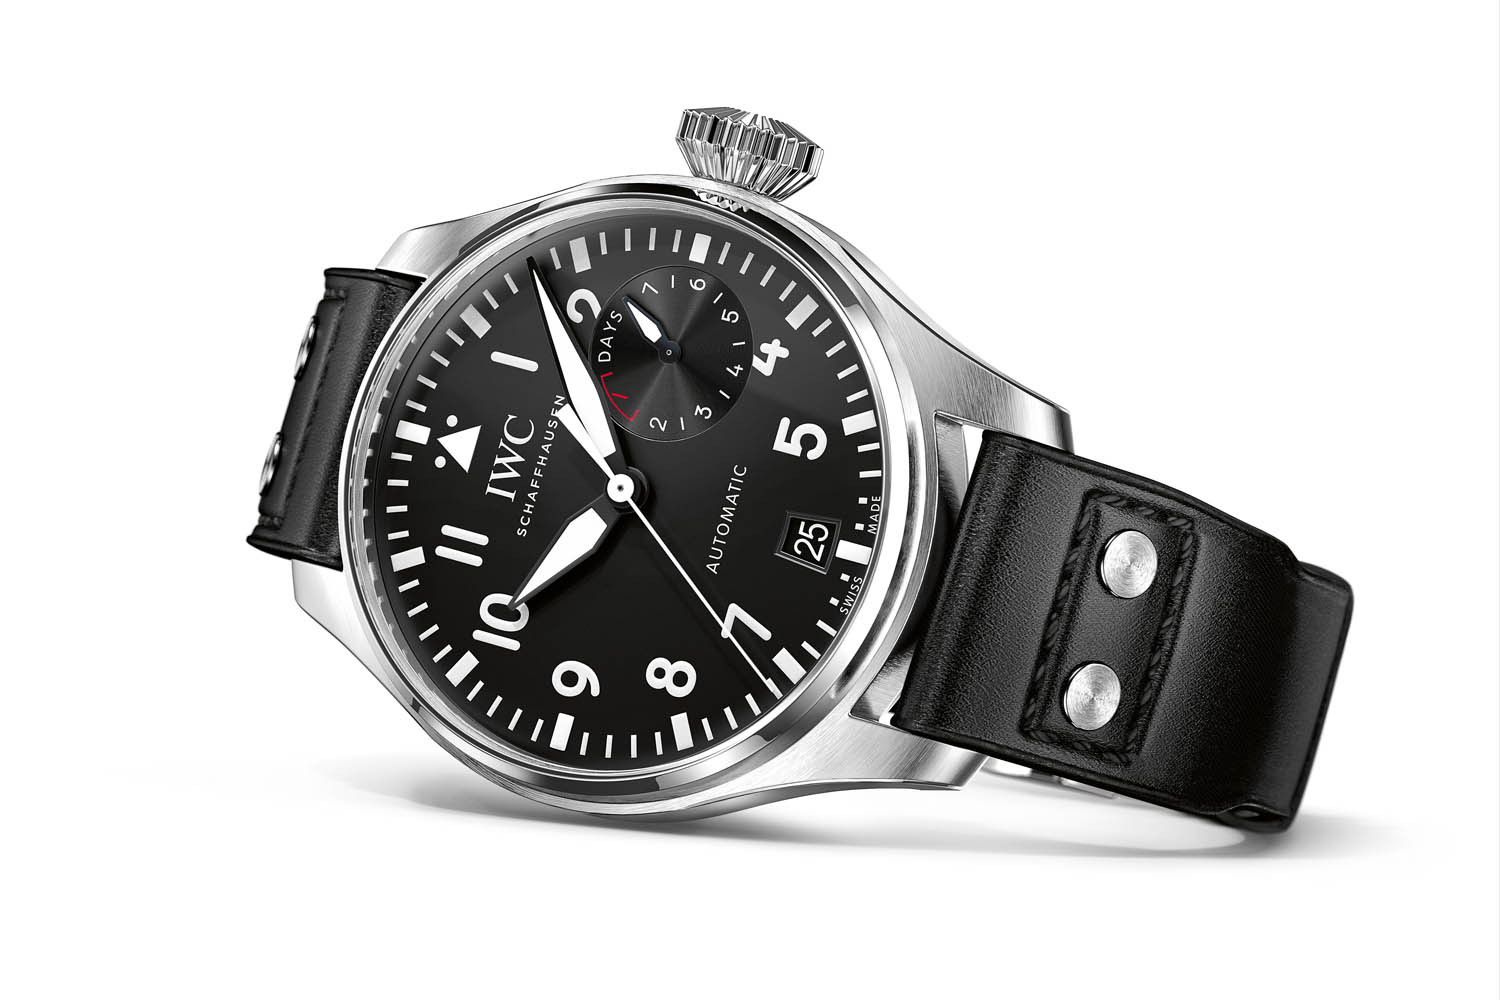 -WC-Big-Pilots-Watch-ref-W500912-S-HH-2016-1.jpg